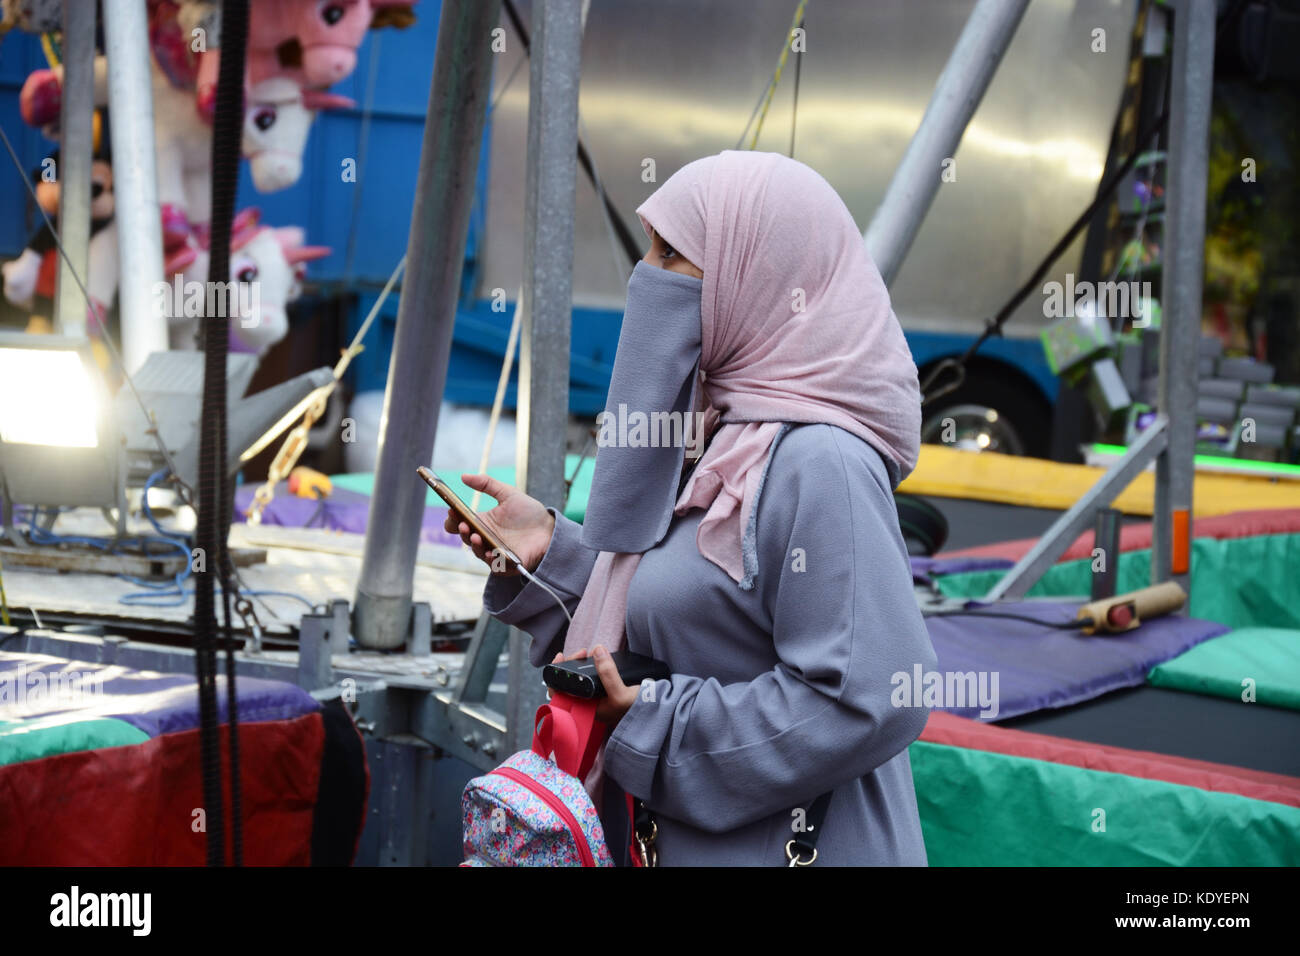 Muslim woman, in Niqab at Fair ground - Stock Image